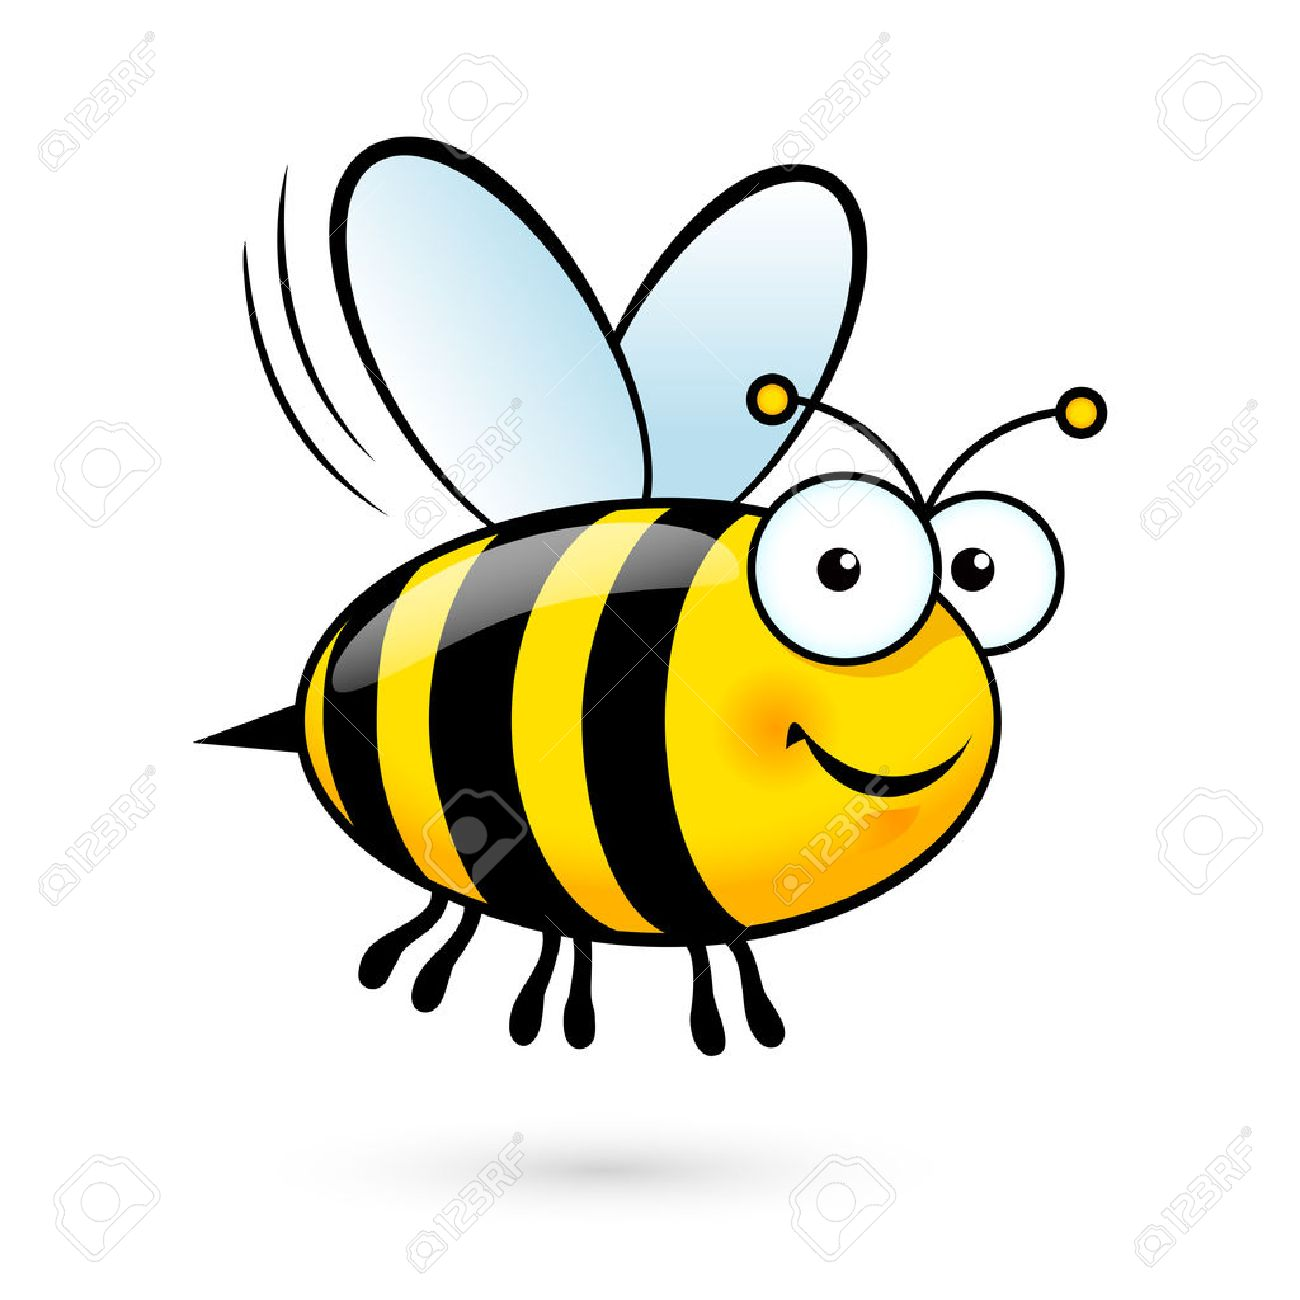 Illustration of a Friendly Cute Bee Flying and Smiling - 52984920